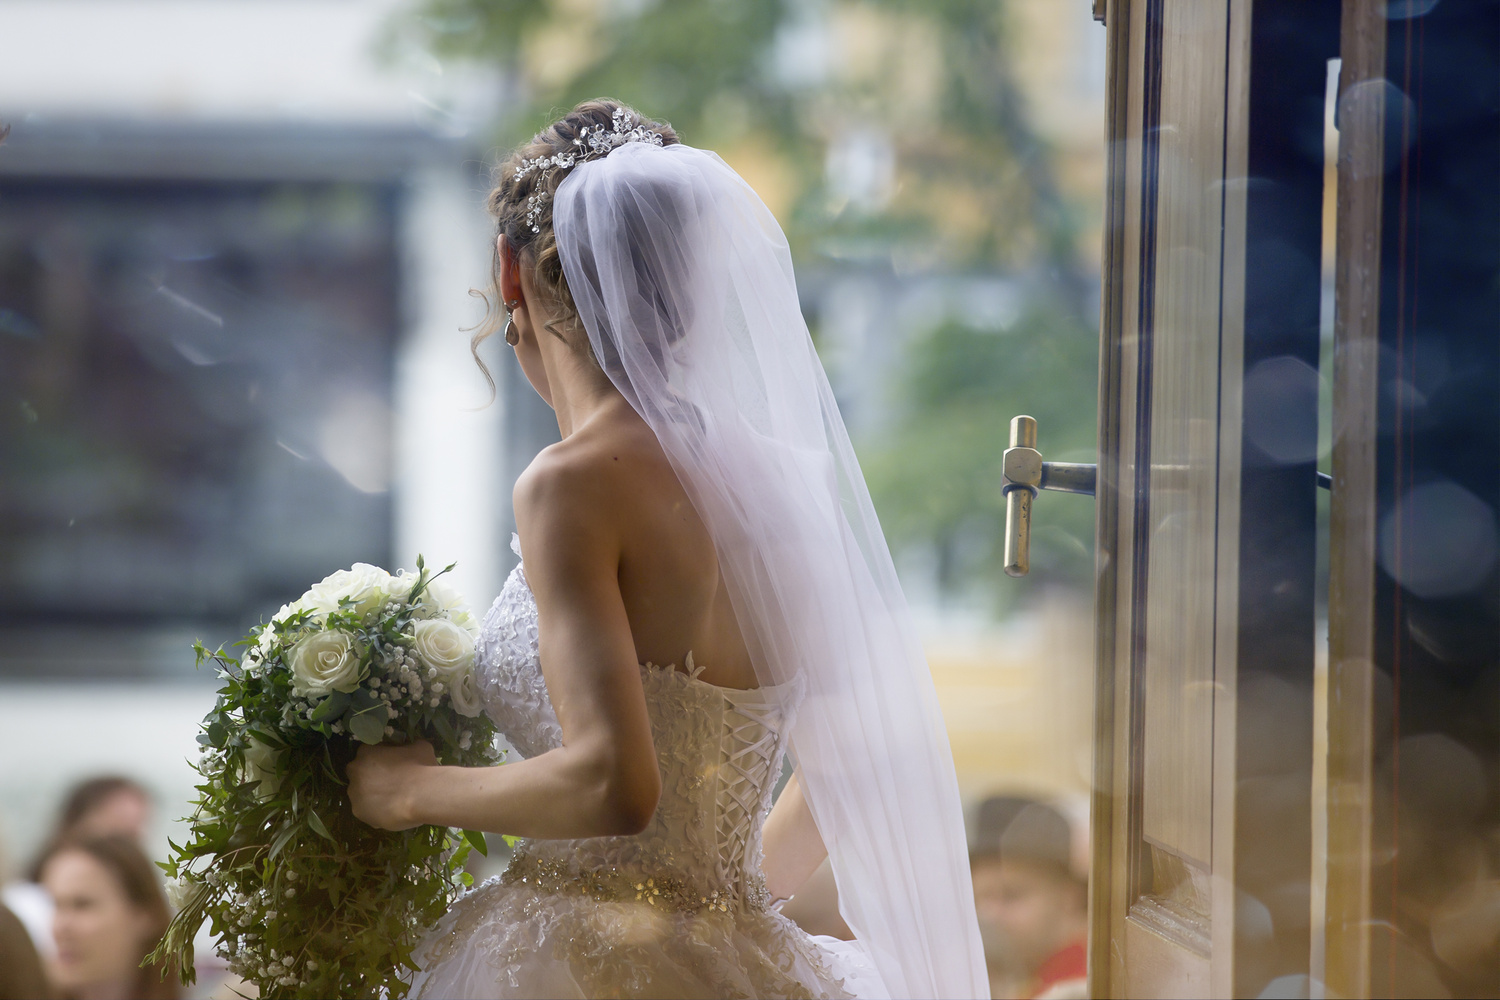 Just Married by Zoltan Tot